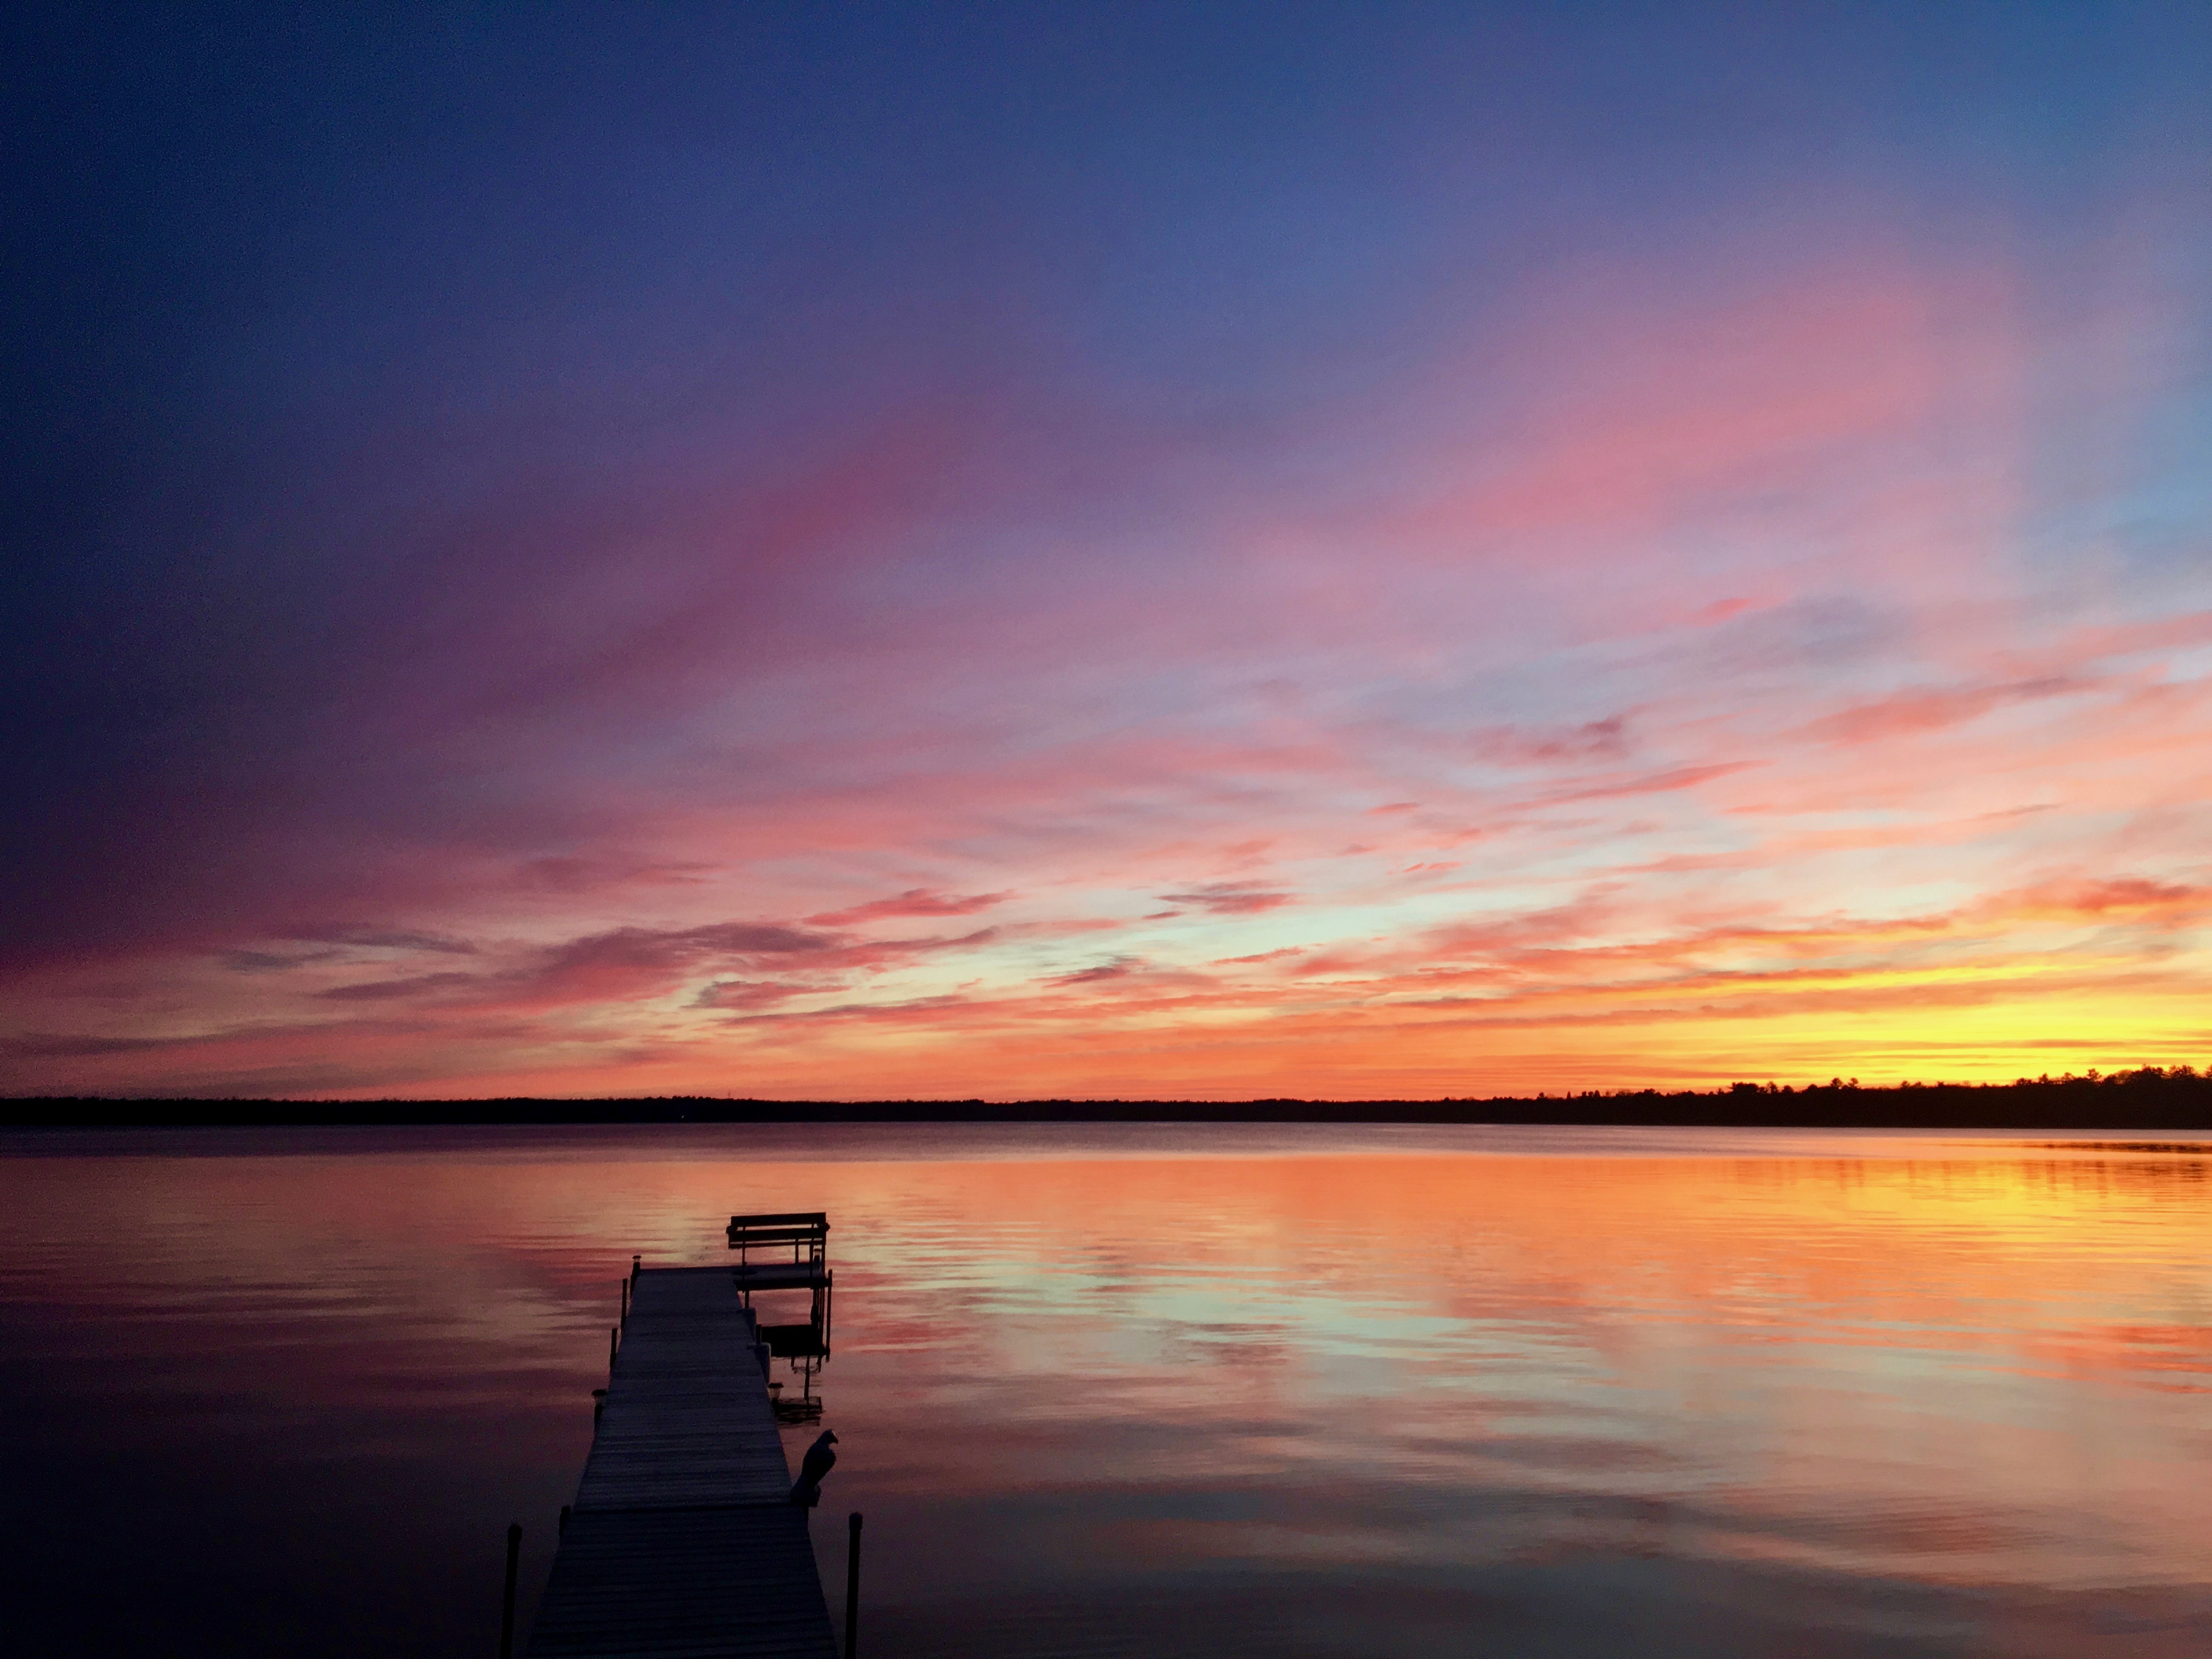 Minnesota Summer Sunset • What's It Really Like Living in the Coldest City in the Continental U.S.? | The Wanderful Me